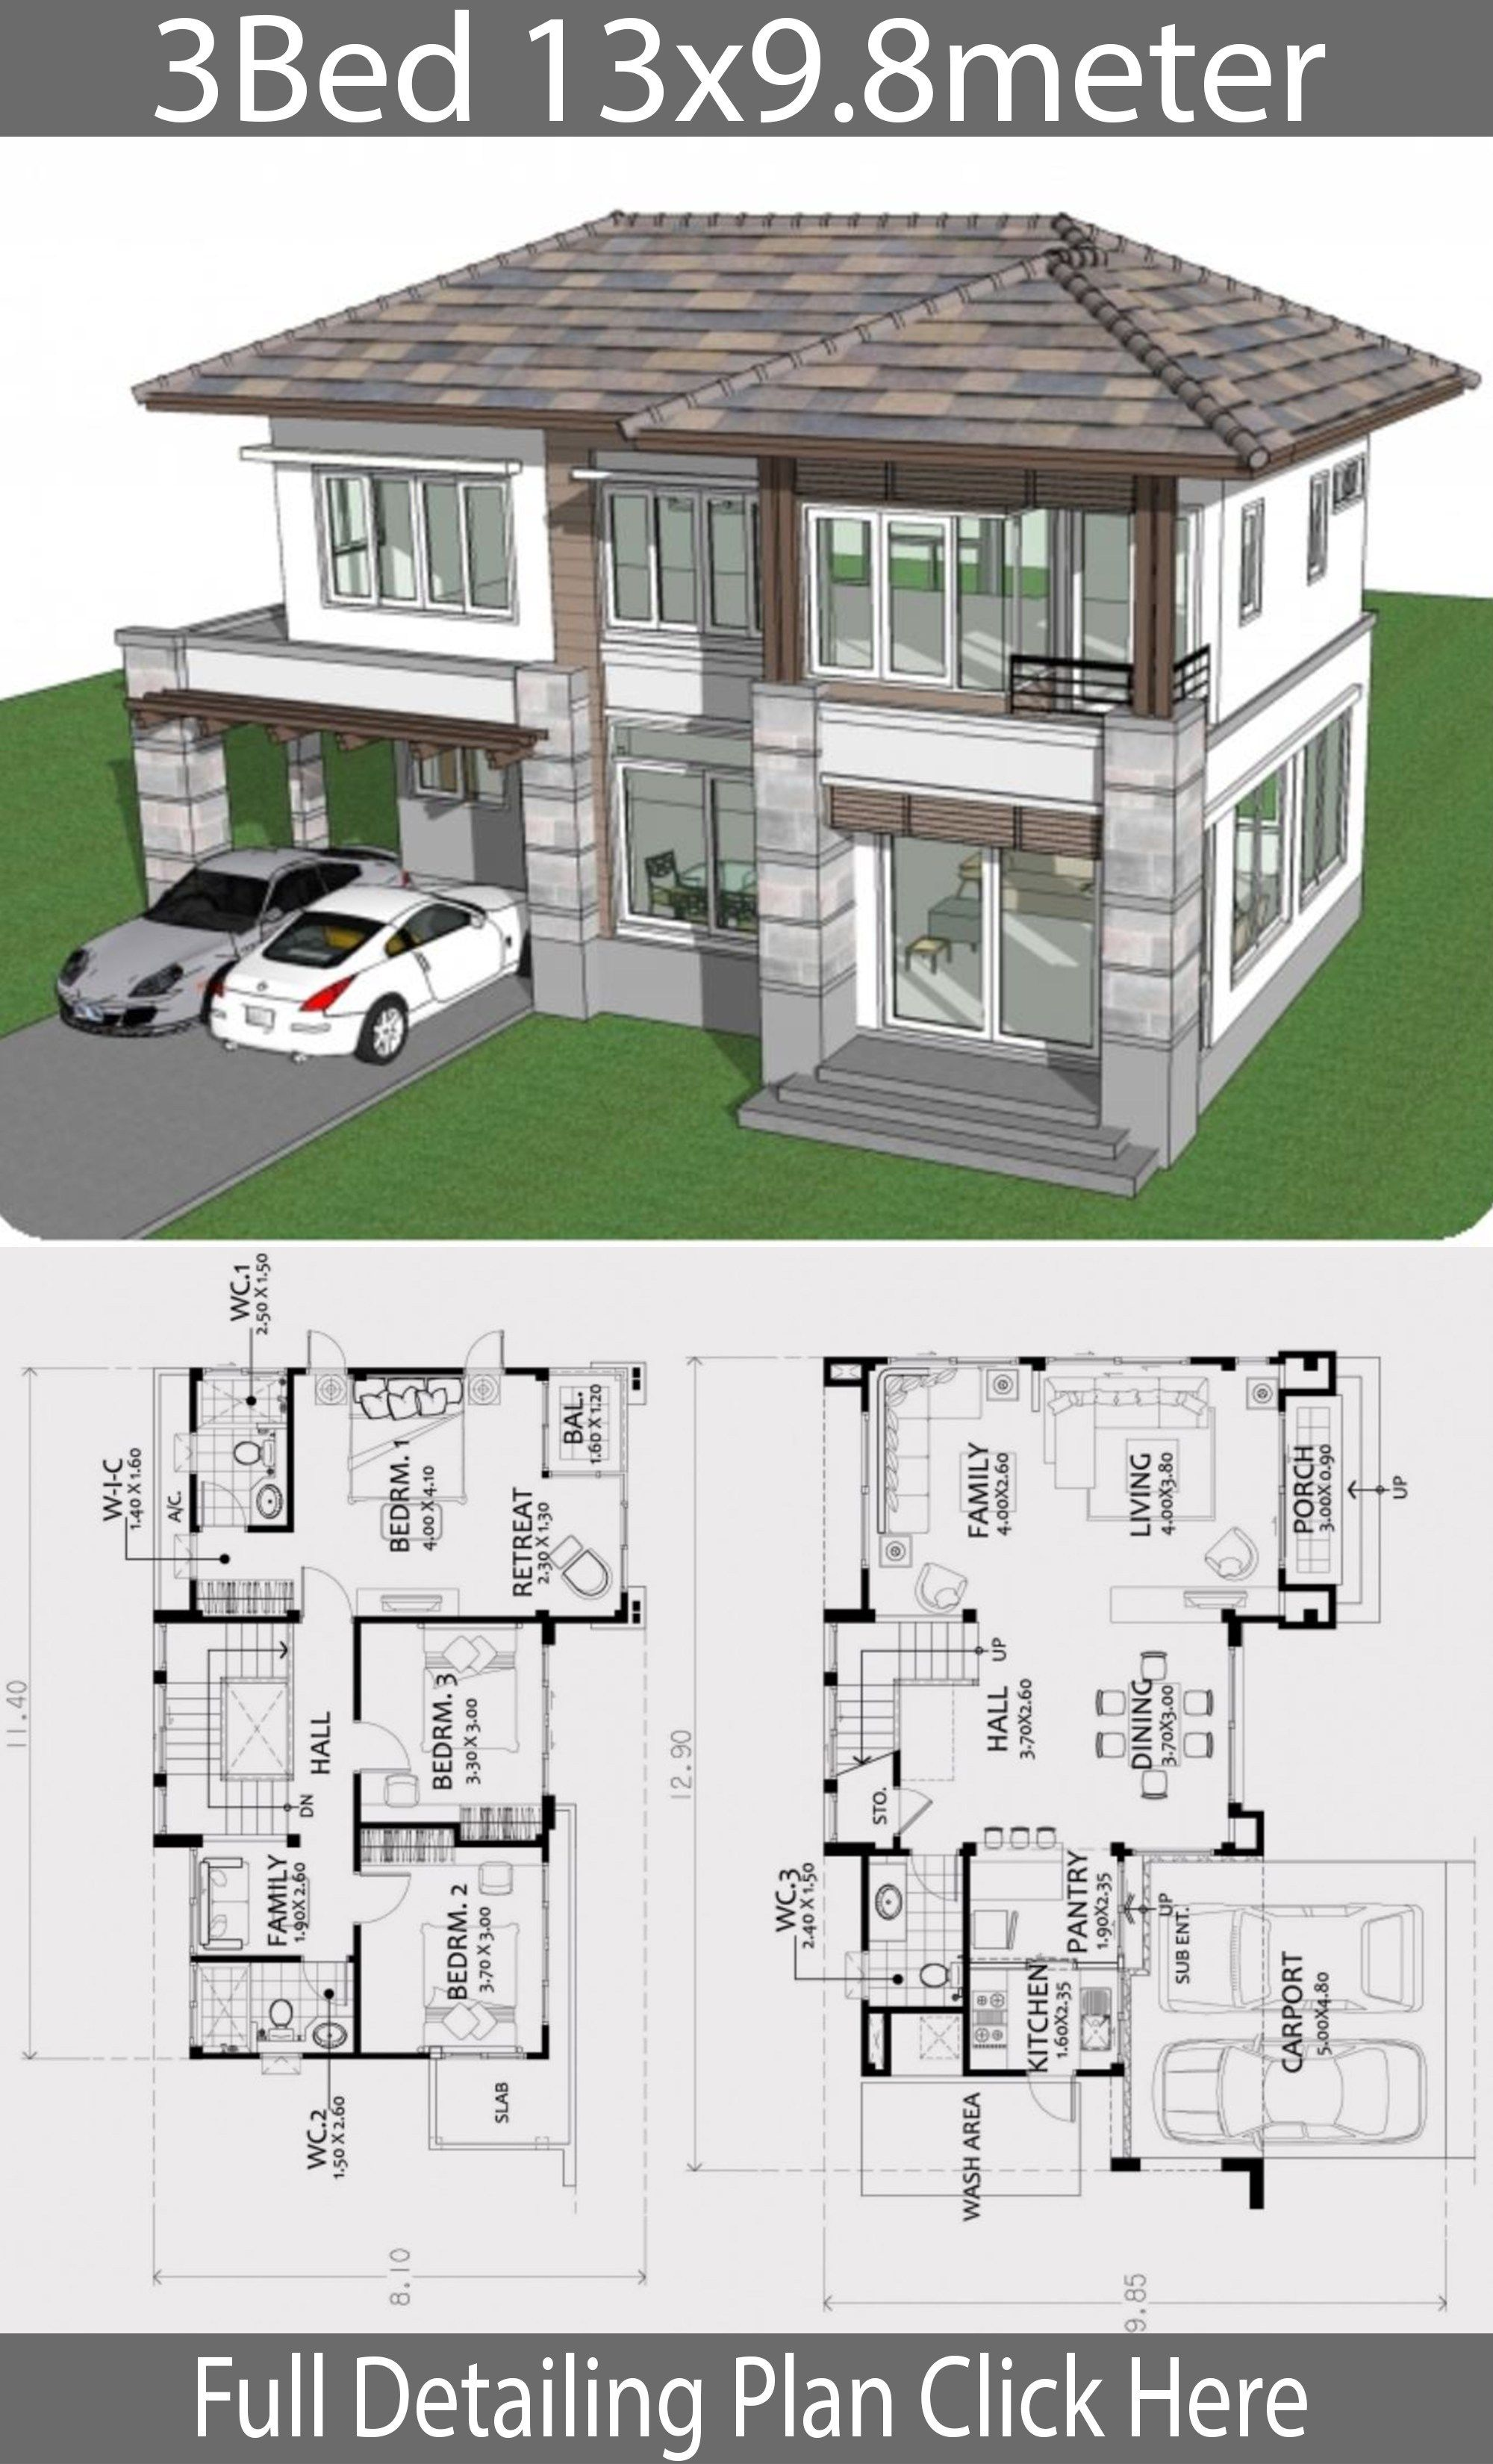 Home Design Plan 13x9 8m With 3 Bedrooms House Layout Plans